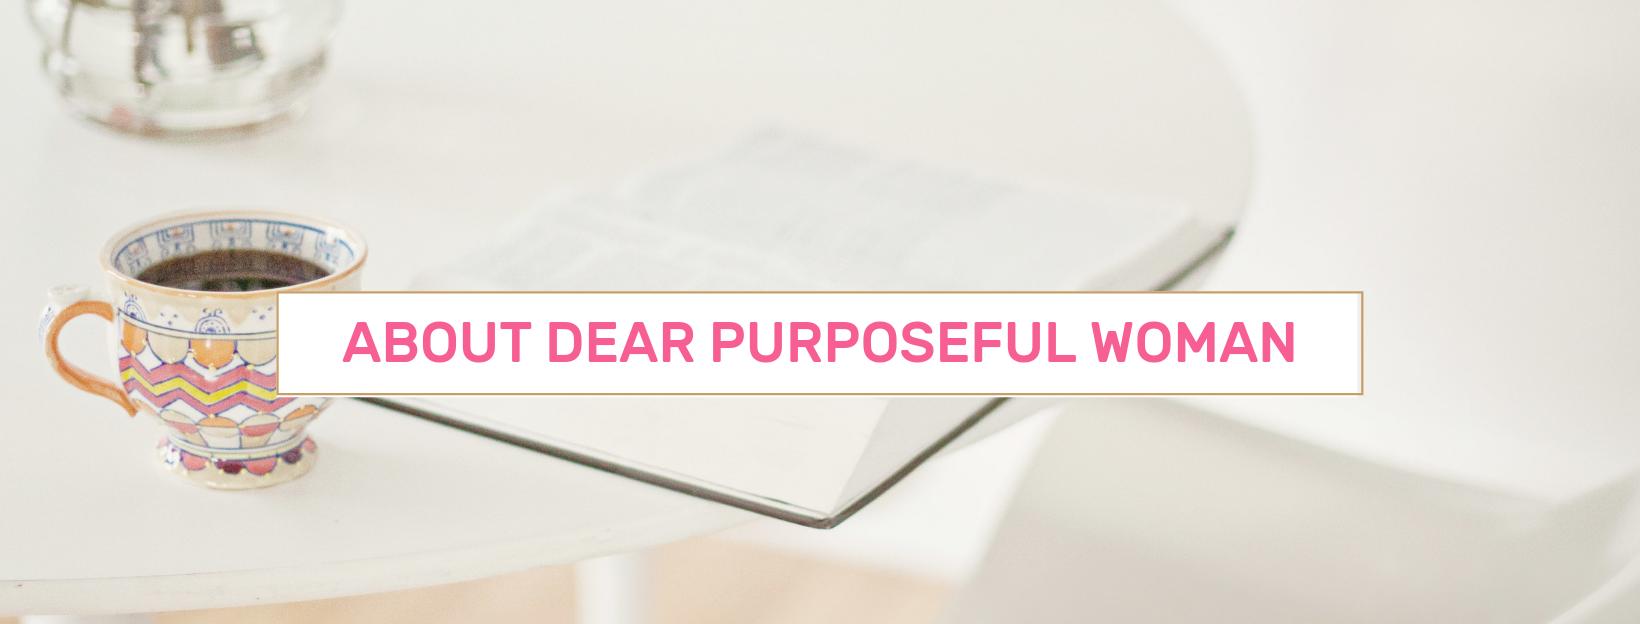 About- Dear Purposeful Woman.png